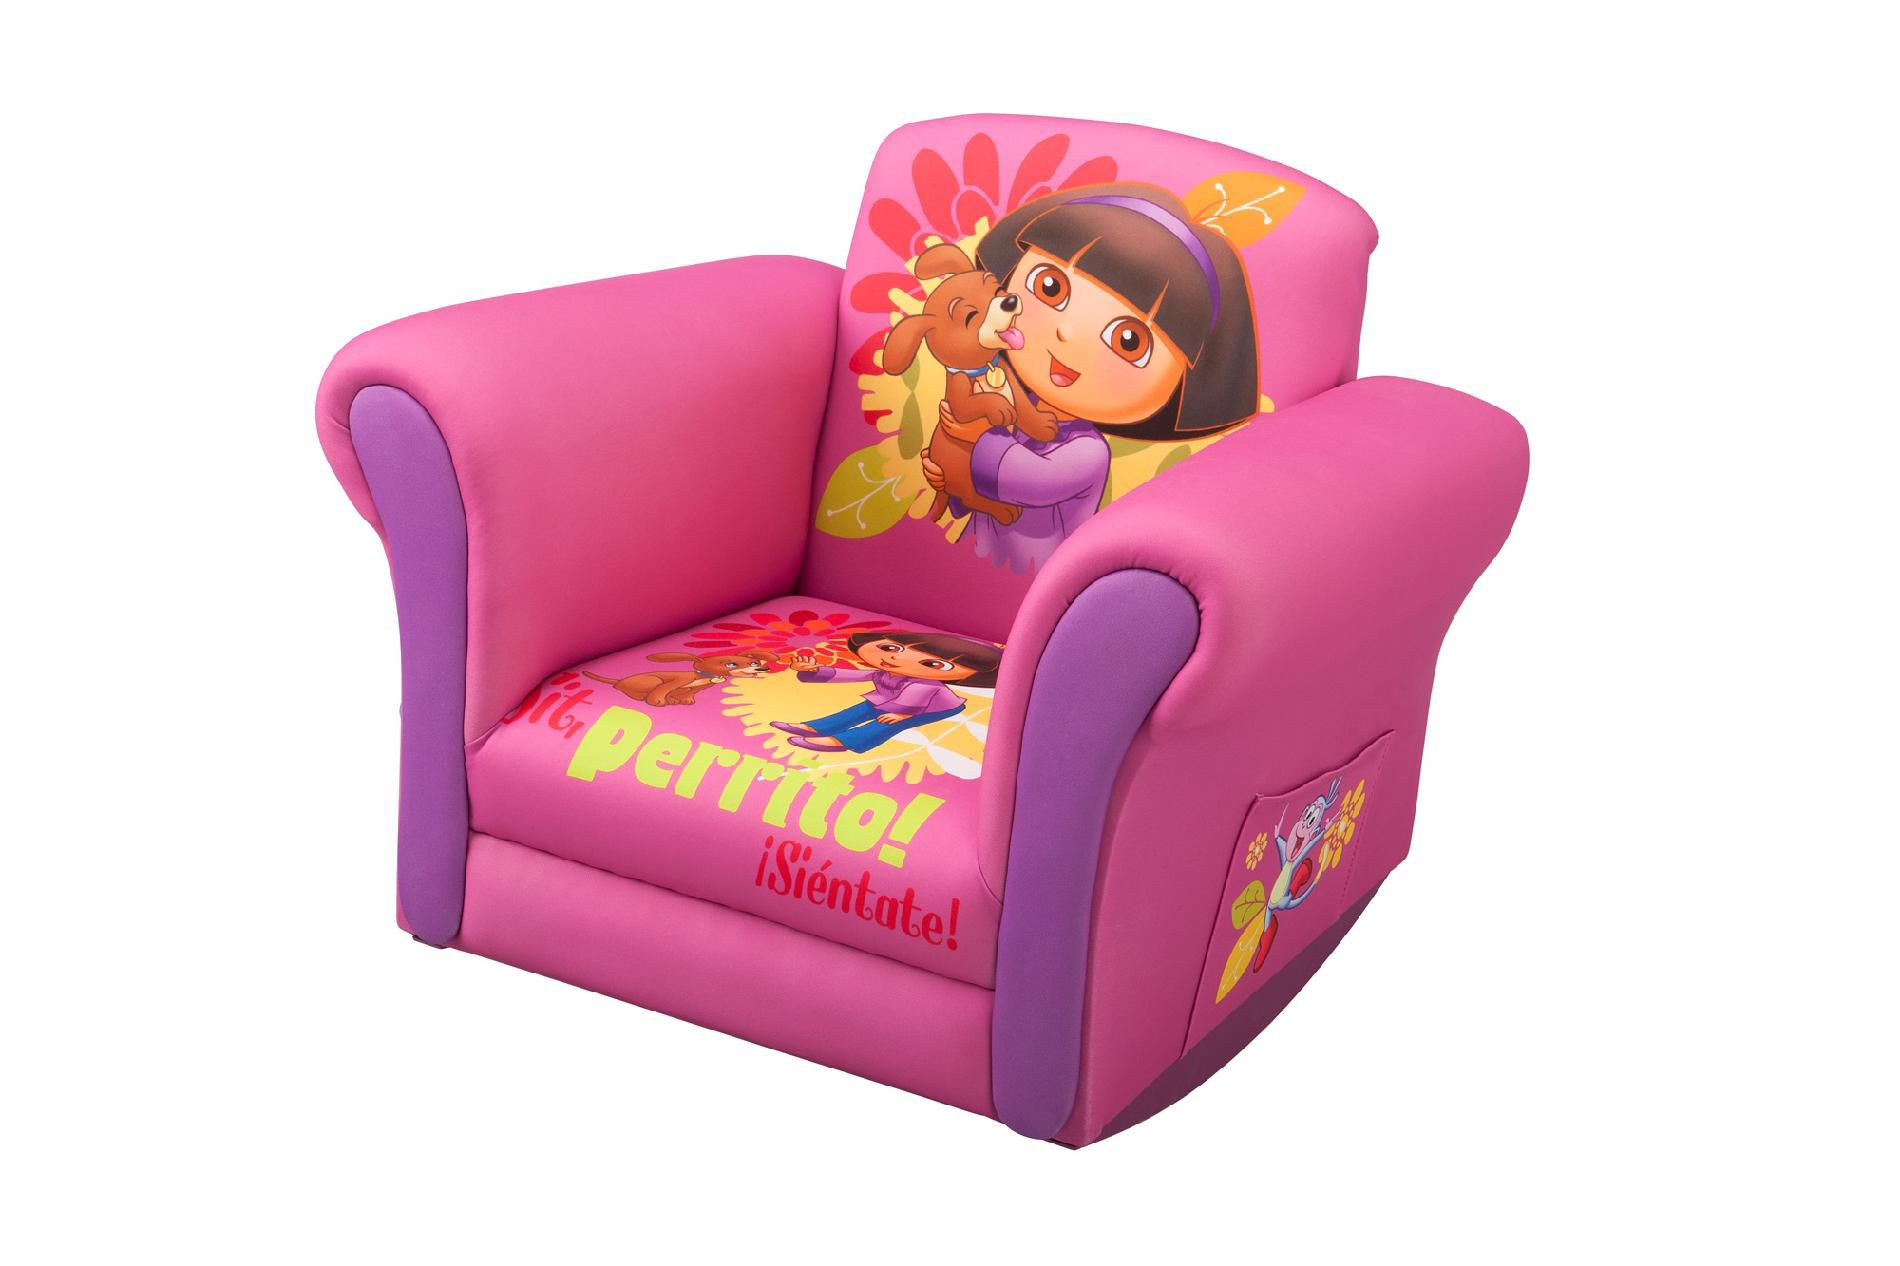 Kids Upholstered Rocking Chair Dora The Explorer Upholstered Rocking Chair